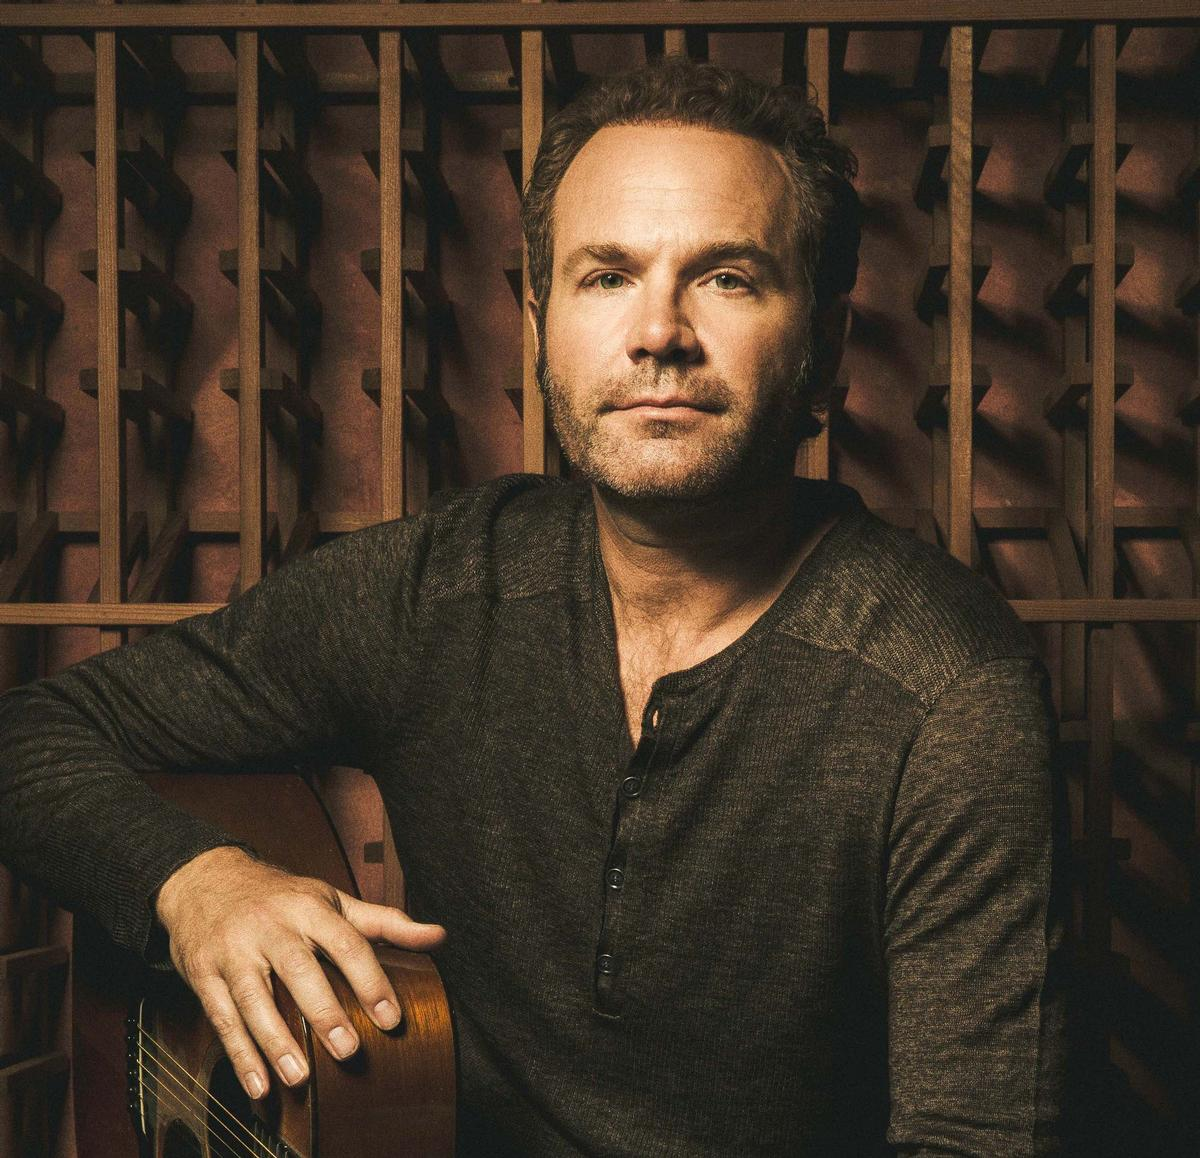 Singer-songwriter Ondrasik, known by his stage name Five for Fighting, exploded onto the music scene with the release of 'Superman' in 2000